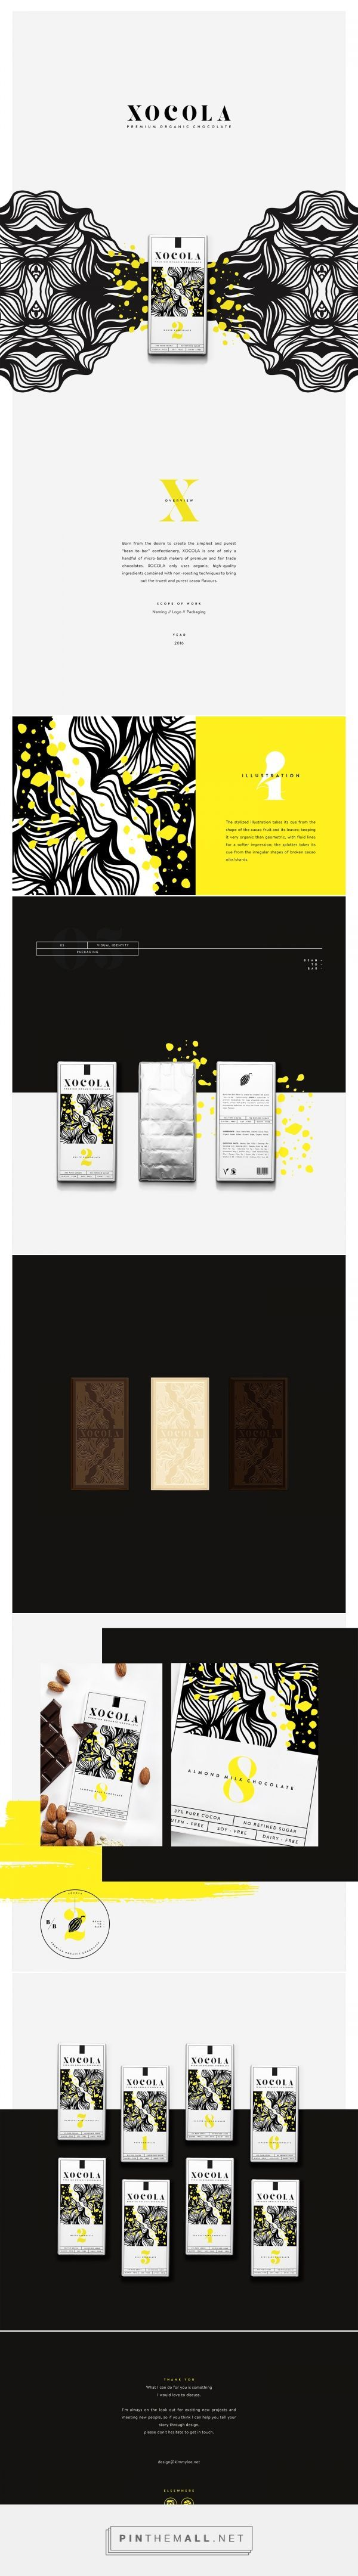 XOCOLA Organic Chocolate Packaging by Kimmy Lee